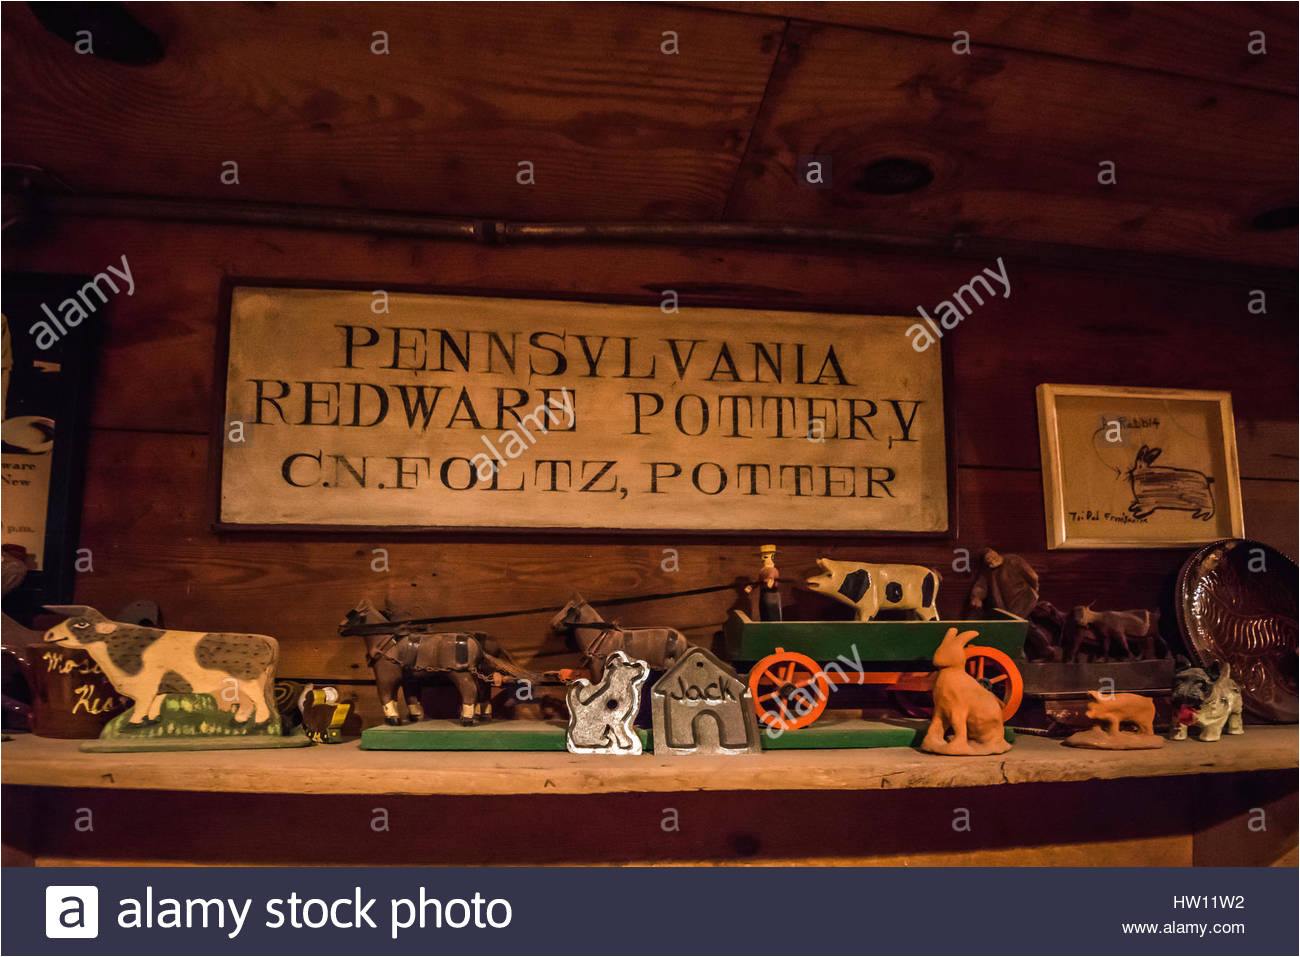 ned and gwen foltz s pennsylvania redware pottery began to be seen around lancaster county in the